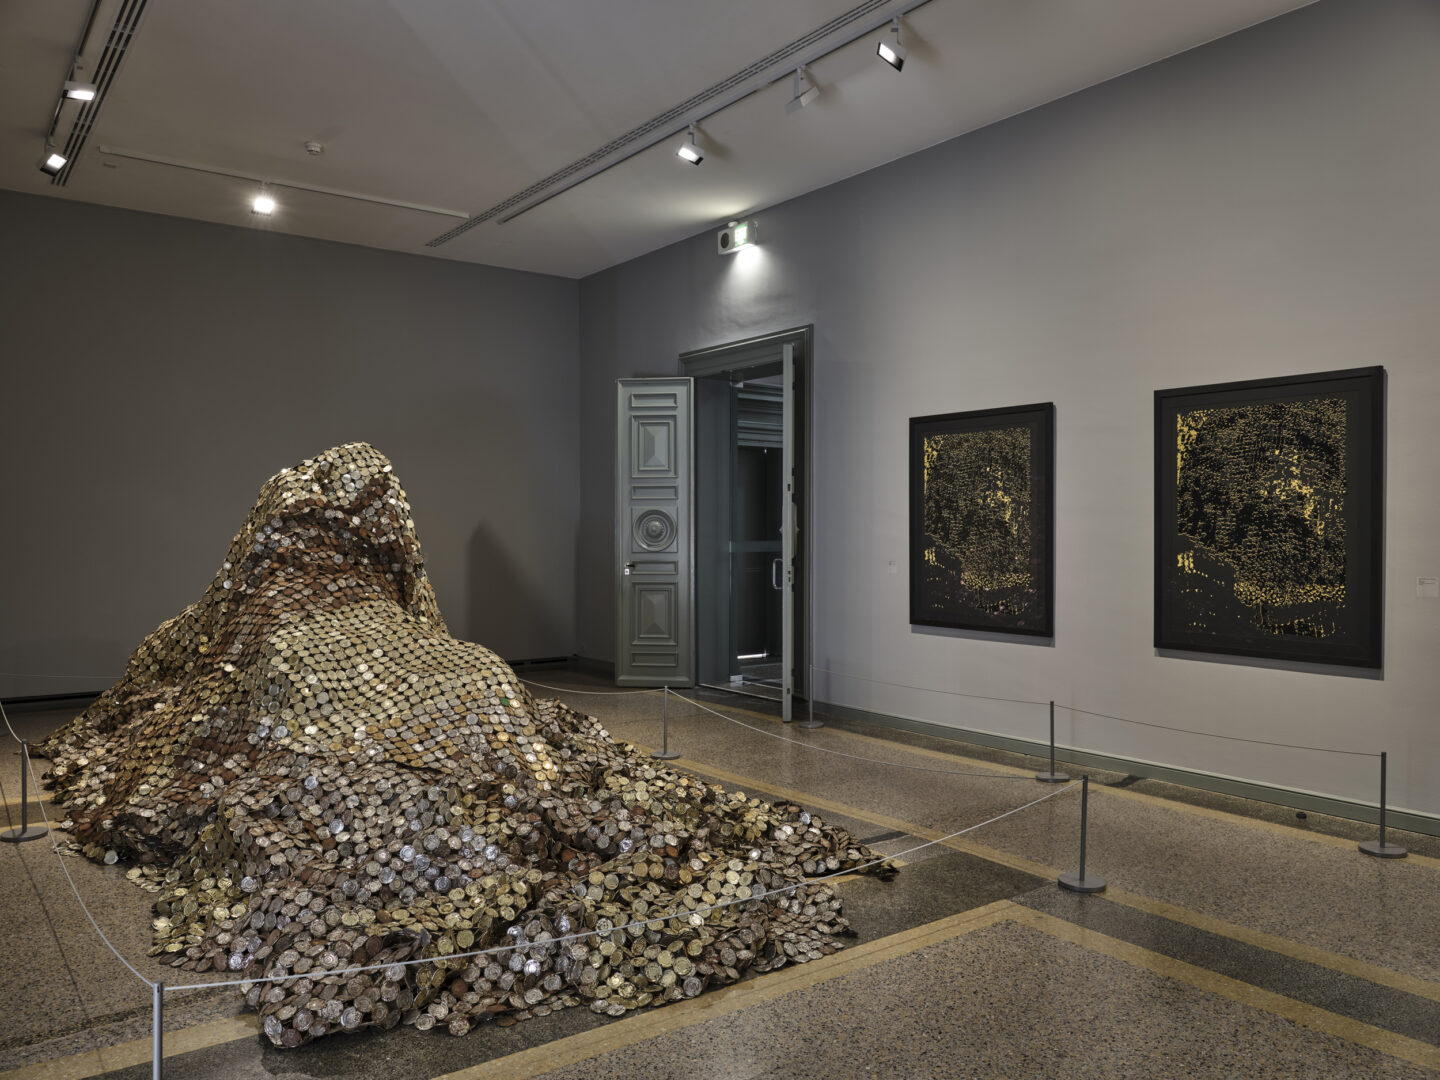 Exhibition View El Anatsui Soloshow «El Anatsui. Triumphant Scale» at Kunstmuseum Bern, 2020 / Photo: Rolf Siegenthaler / Courtesy: the artist and Kunstmuseum Bern